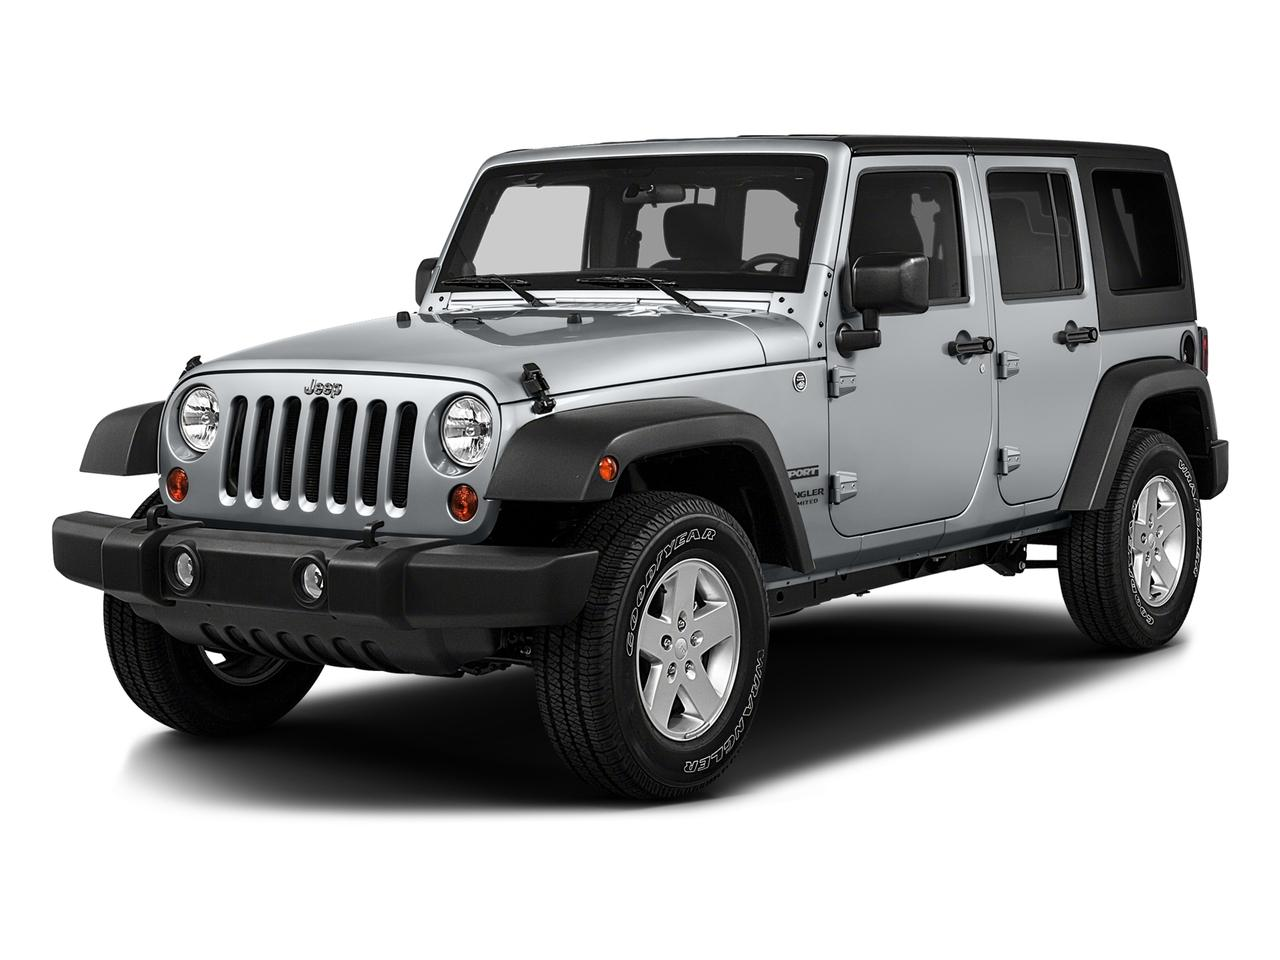 2016 Jeep Wrangler Unlimited Vehicle Photo in Prescott, AZ 86305